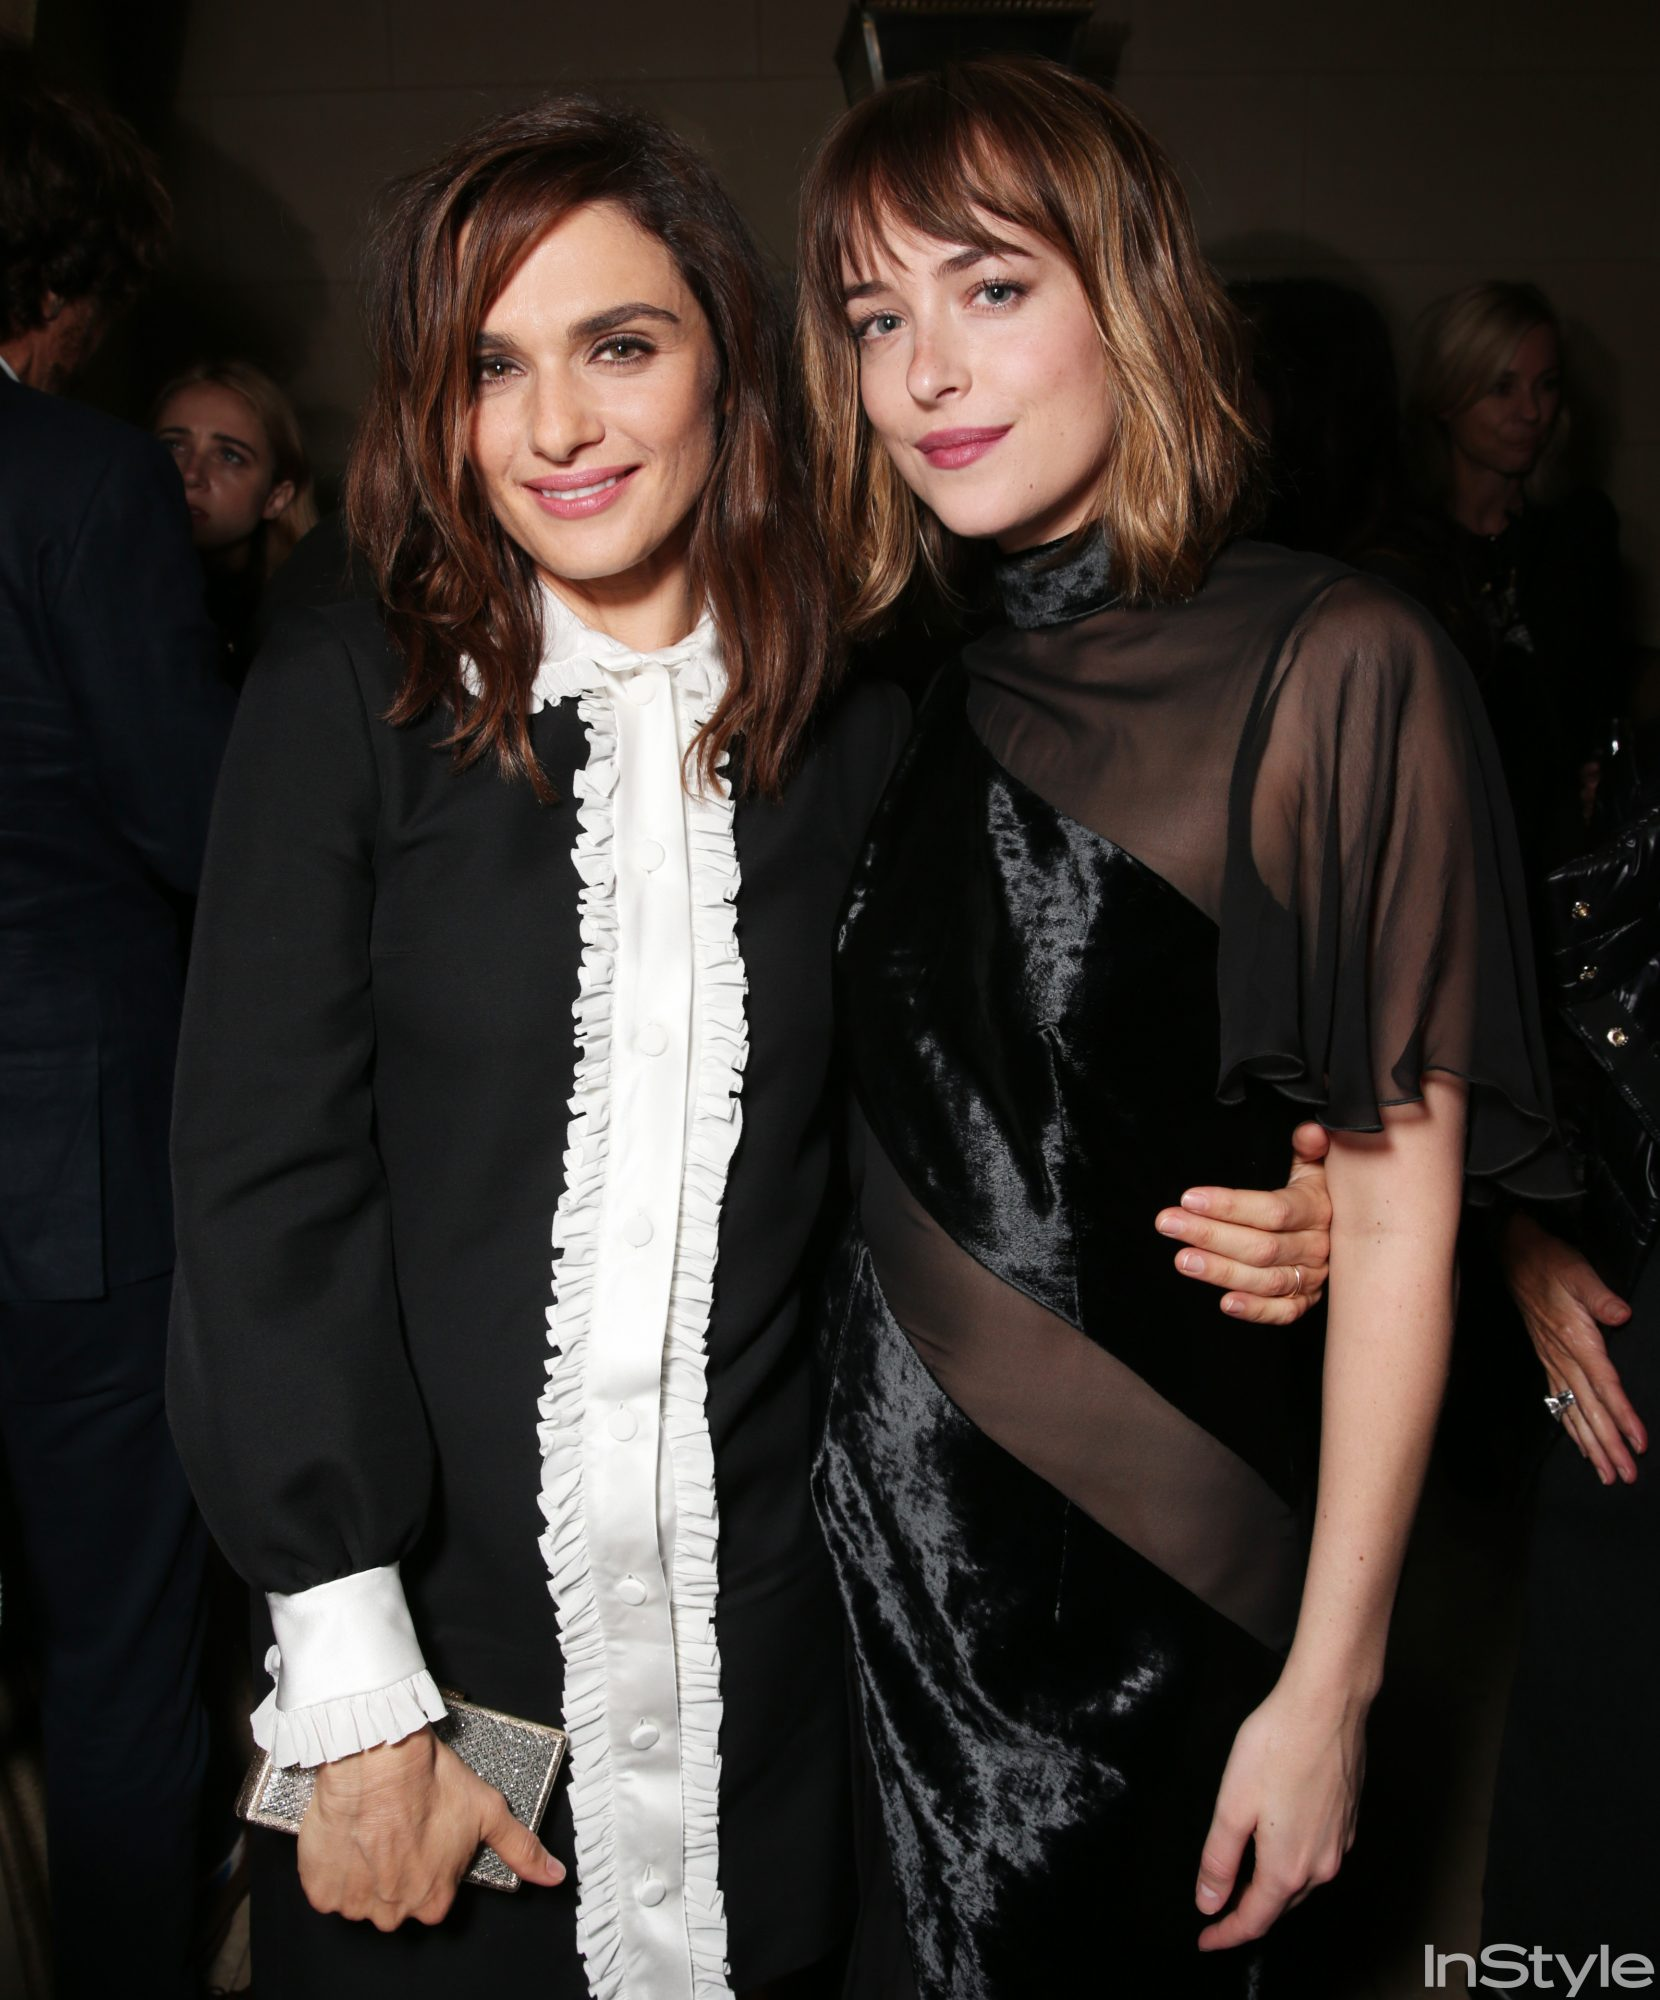 Rachel Weisz and Dakota Johnson